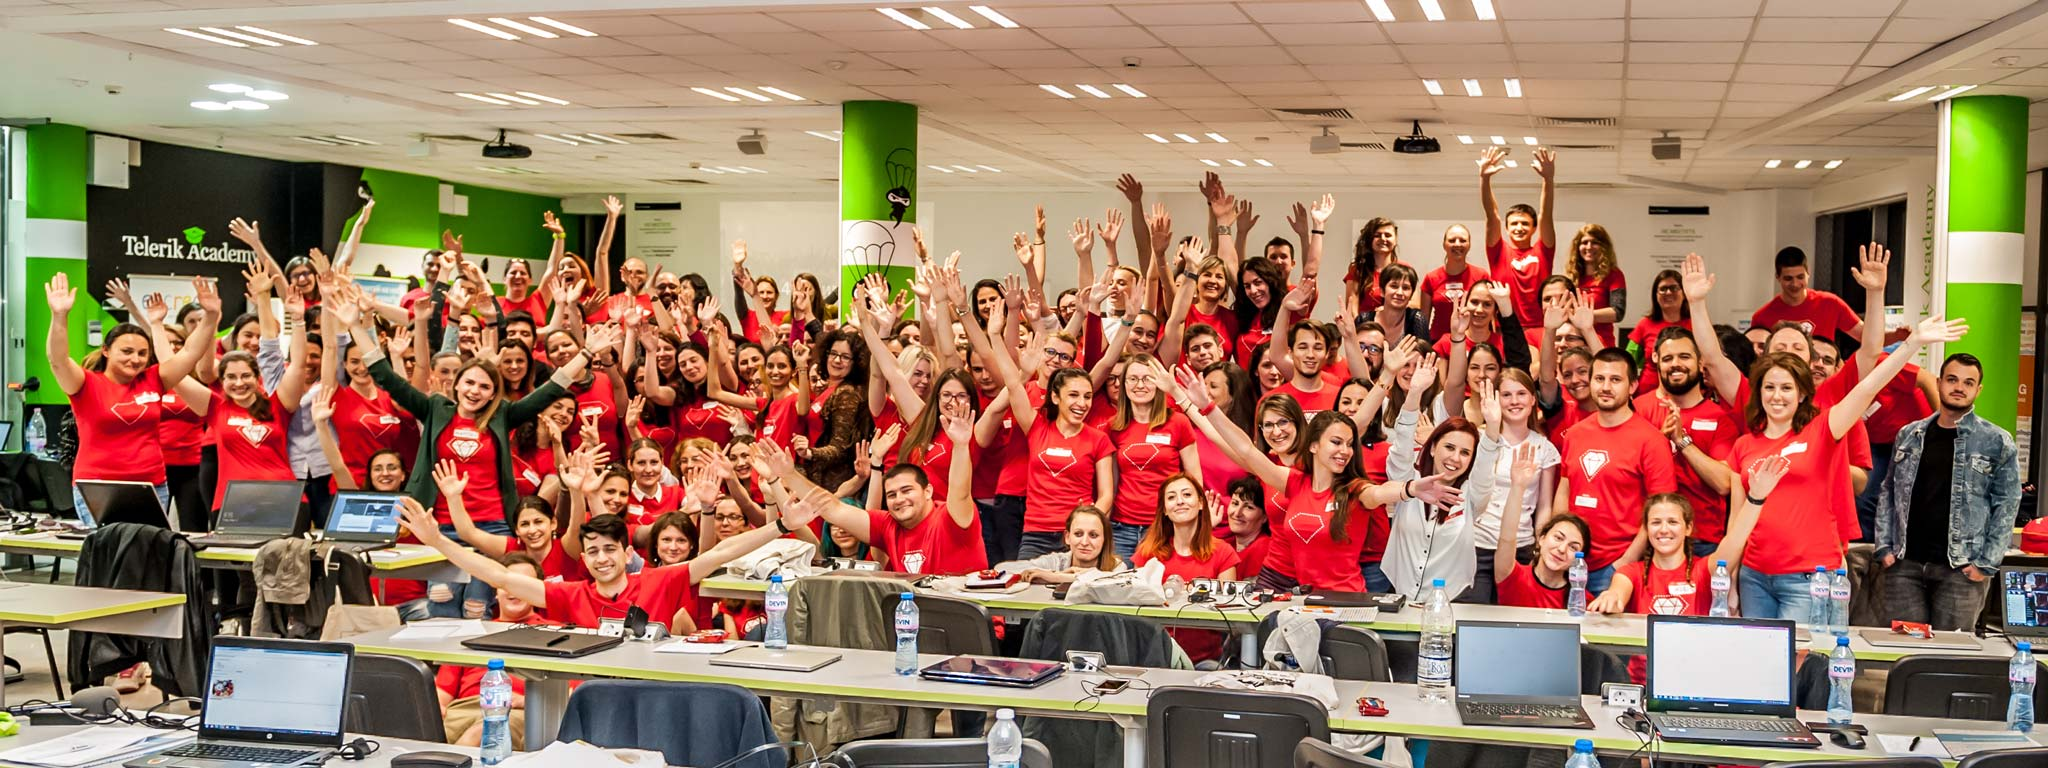 Rails Girls Sofia 8.0 May 2017 Friday Hug